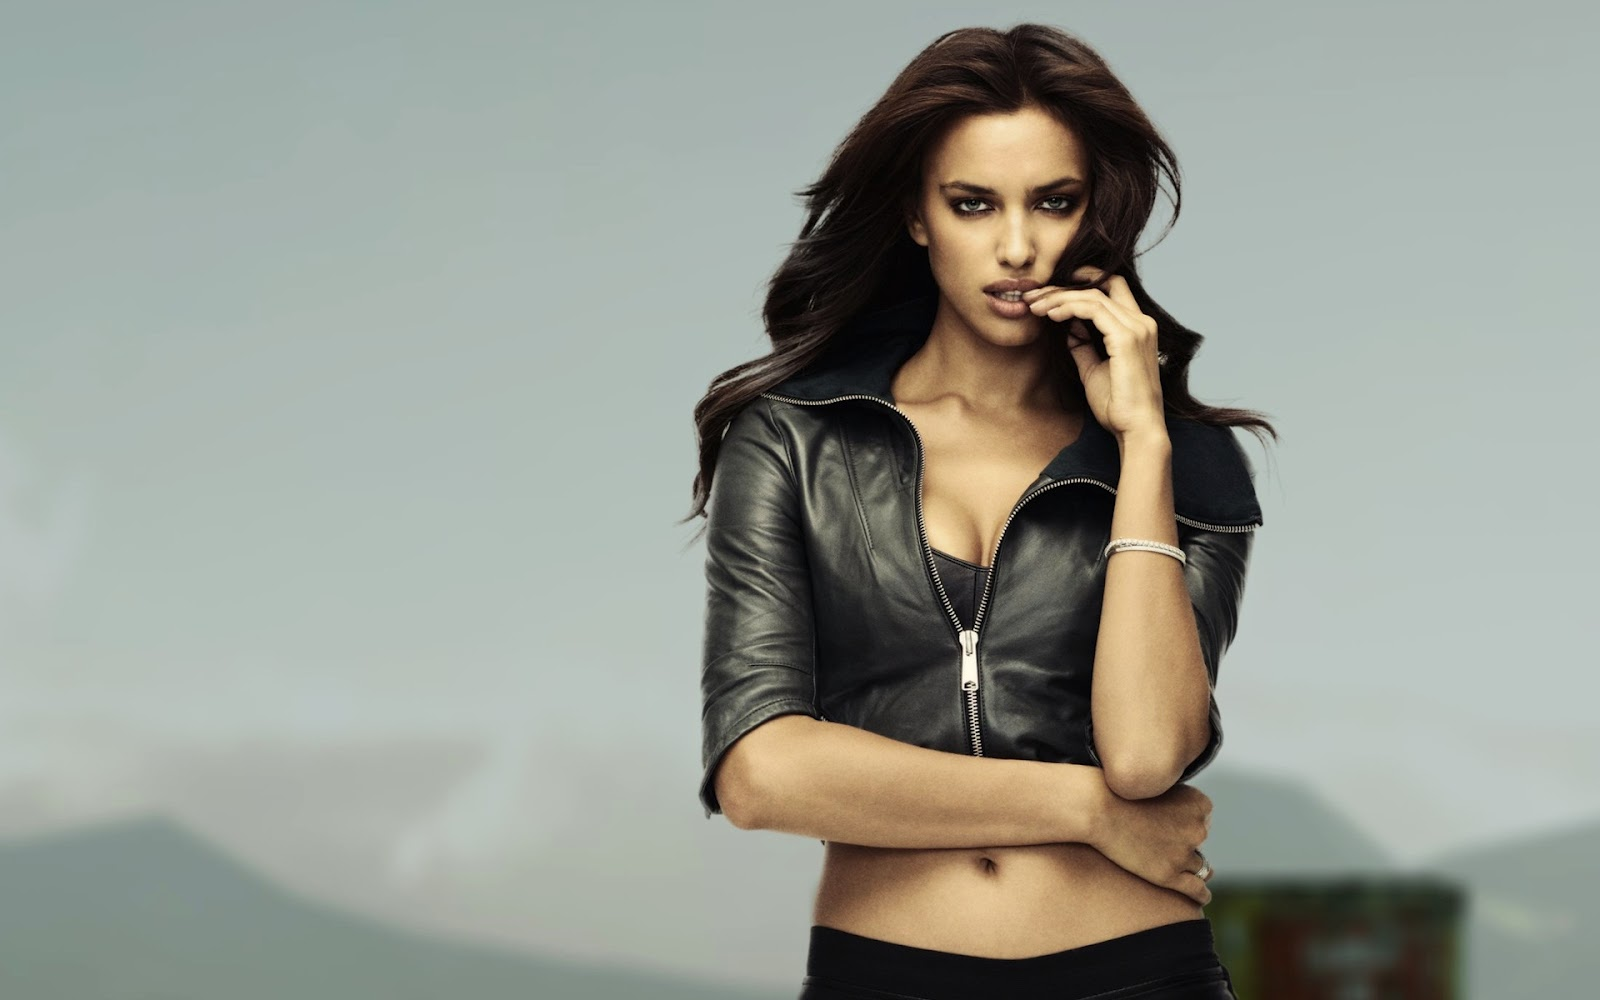 http://2.bp.blogspot.com/-1sMAW5pShk8/T38c2Gllm_I/AAAAAAAABHQ/TkuLQmUzrc8/s1600/irina_shayk_for_nfs_the_run-wide.jpg